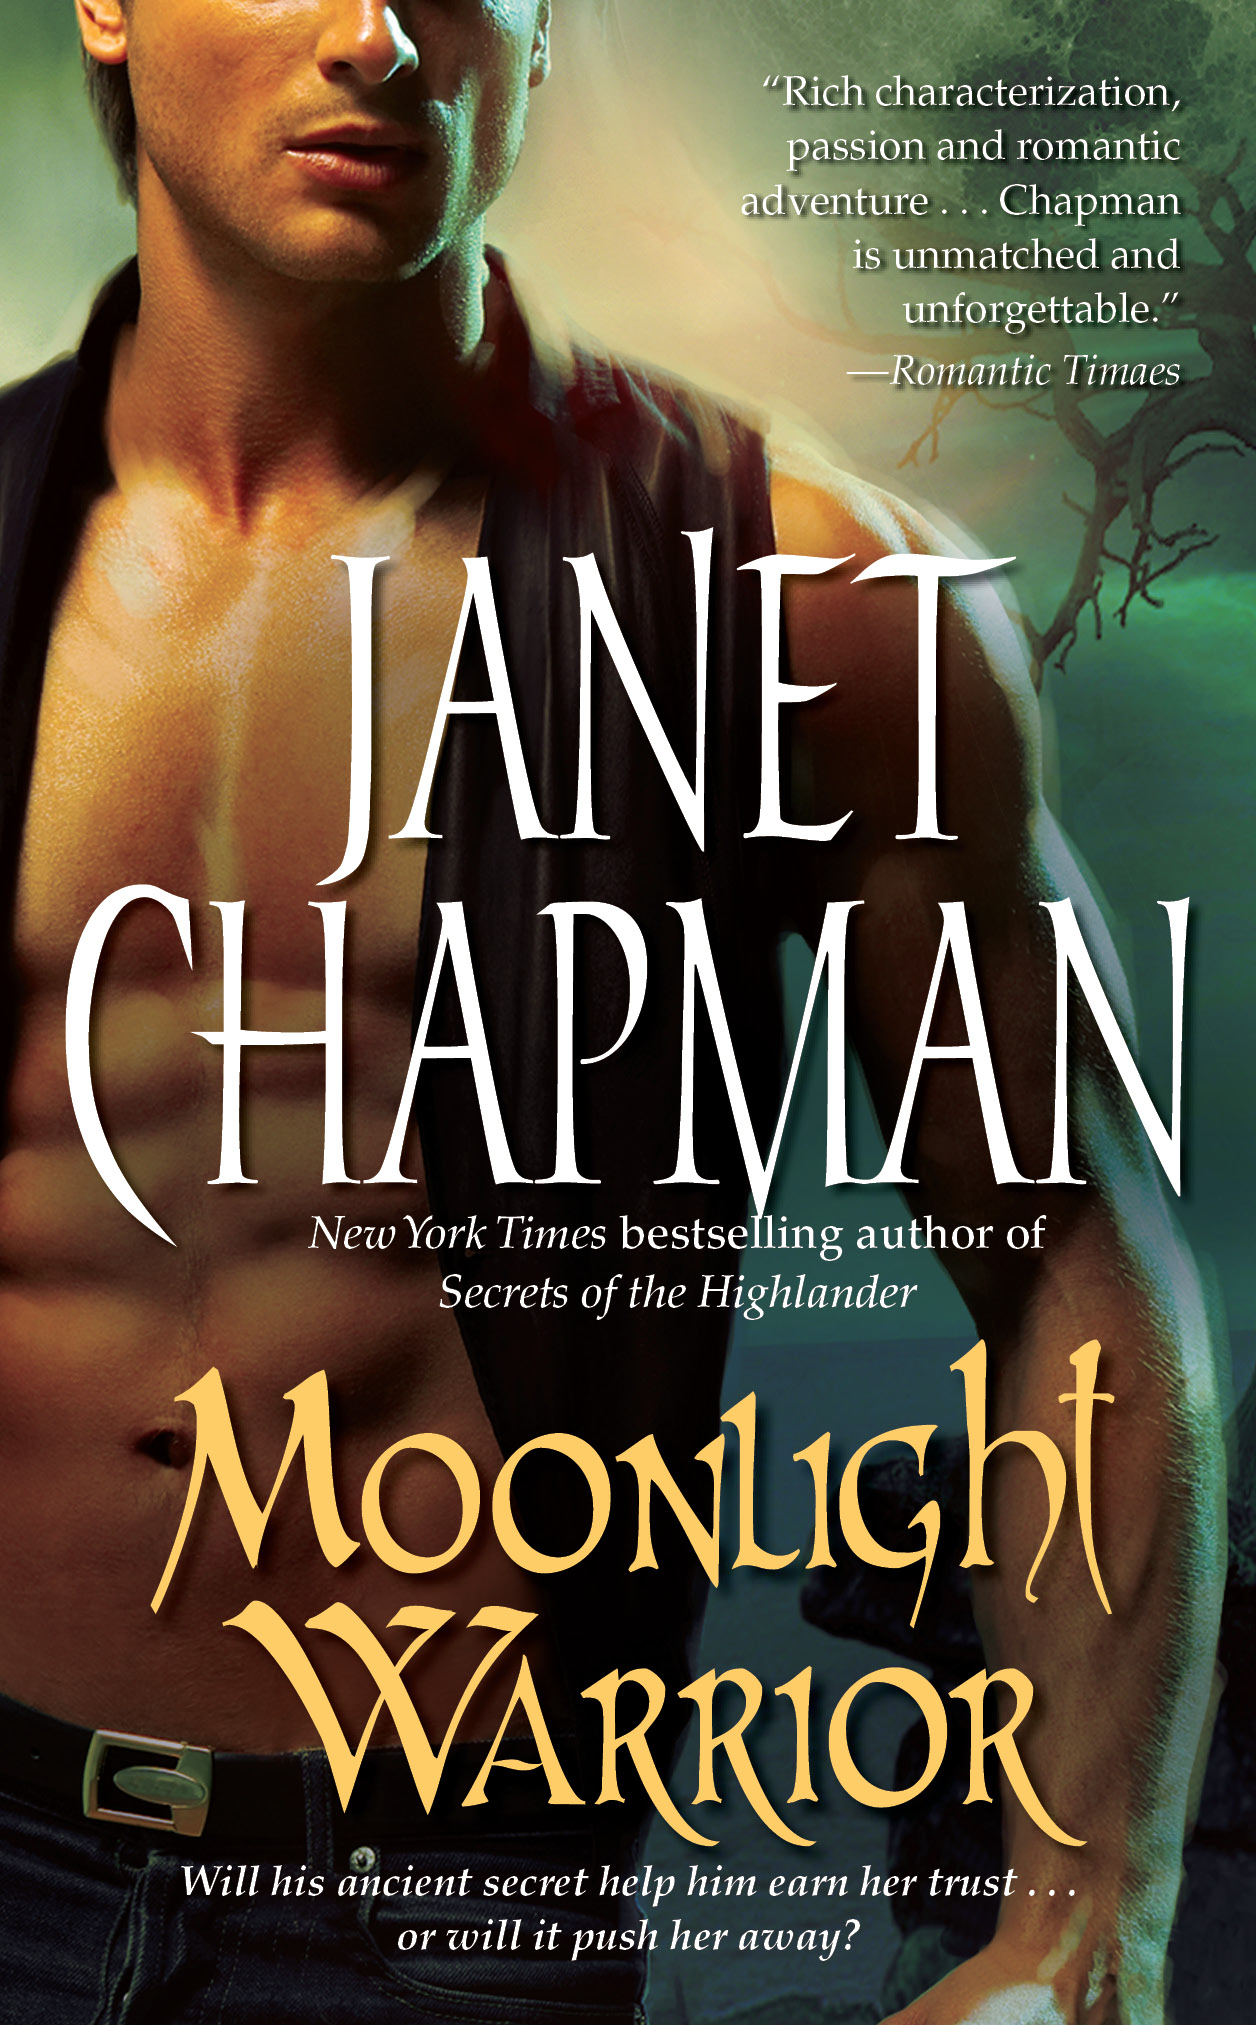 Moonlight warrior ebook by janet chapman official publisher page cvr9781439159446 9781439159446 hr fandeluxe Ebook collections